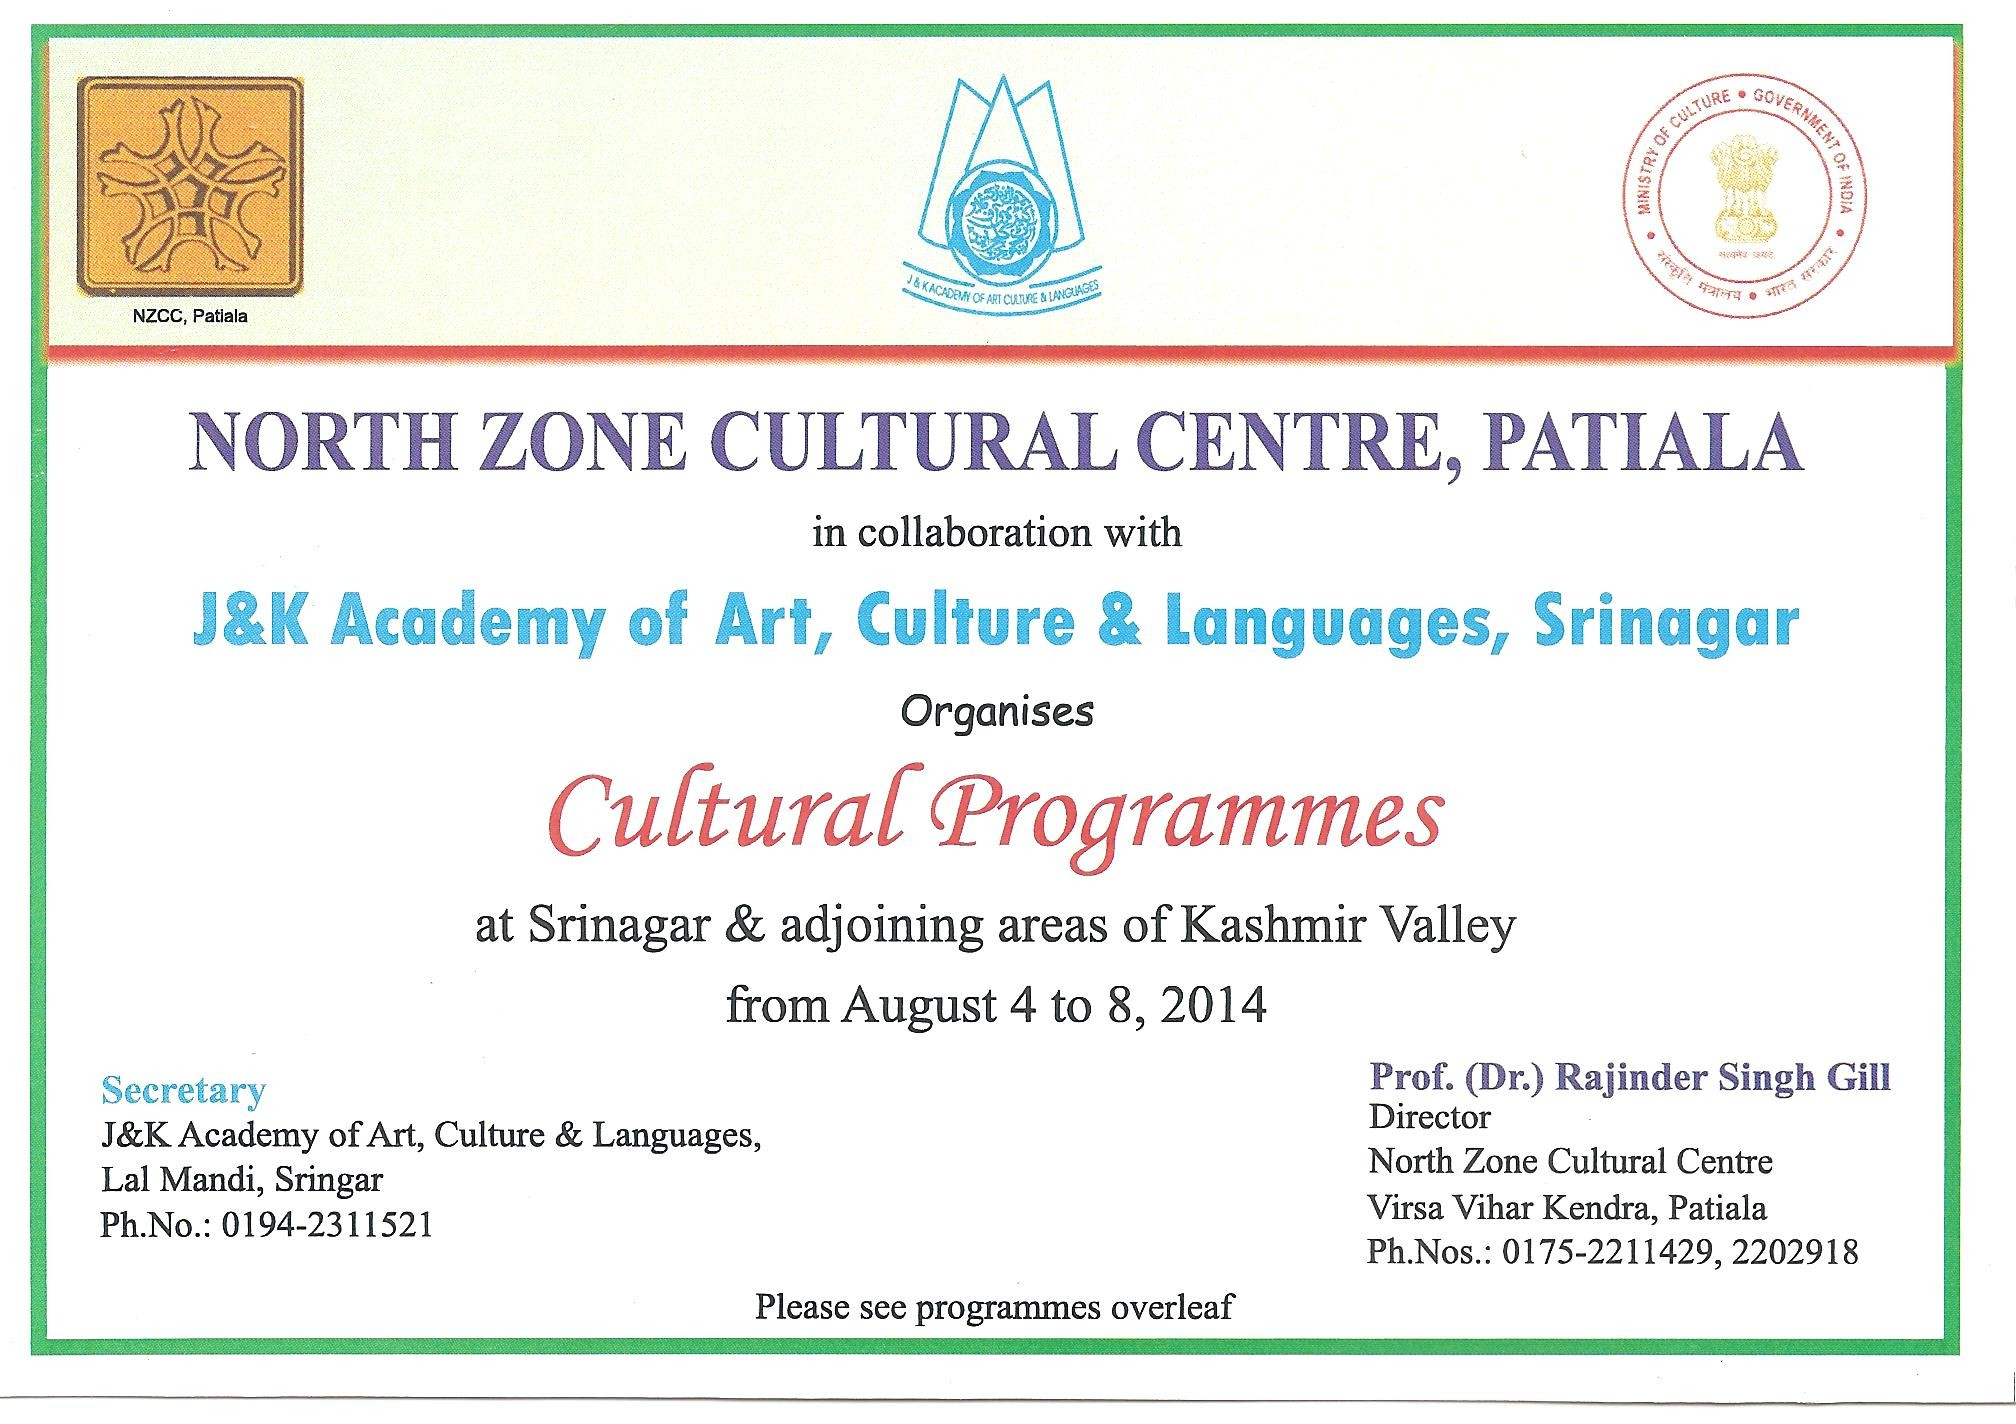 Cultural Program at Srinagar Jammu & Kashmir